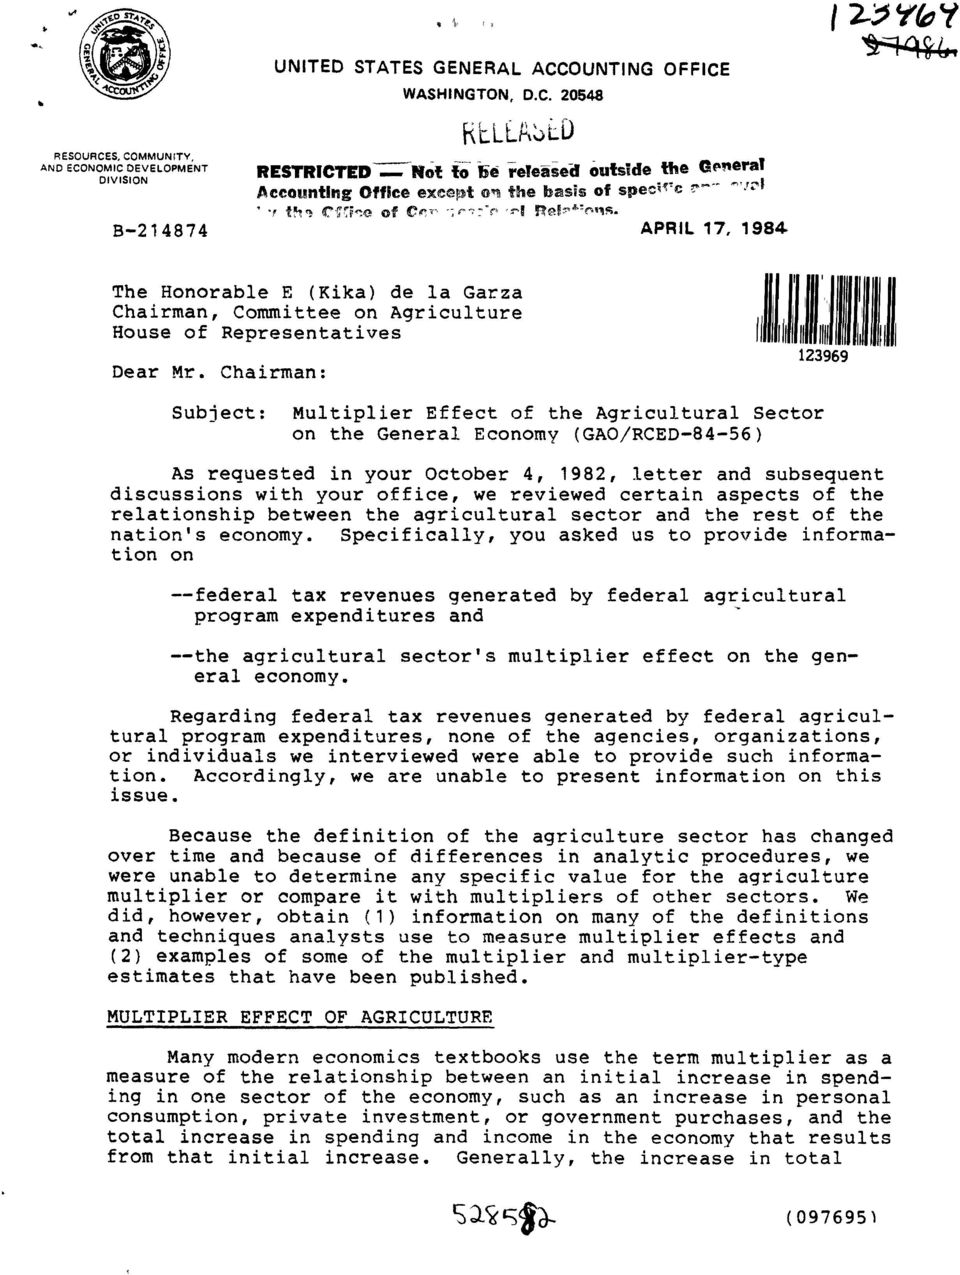 Chairman: Subject: Multiplier Effect of the Agricultural Sector on the General Economy (GAO/RCED-84-56) As requested in your October 4, 1982, letter and subsequent discussions with your office, we